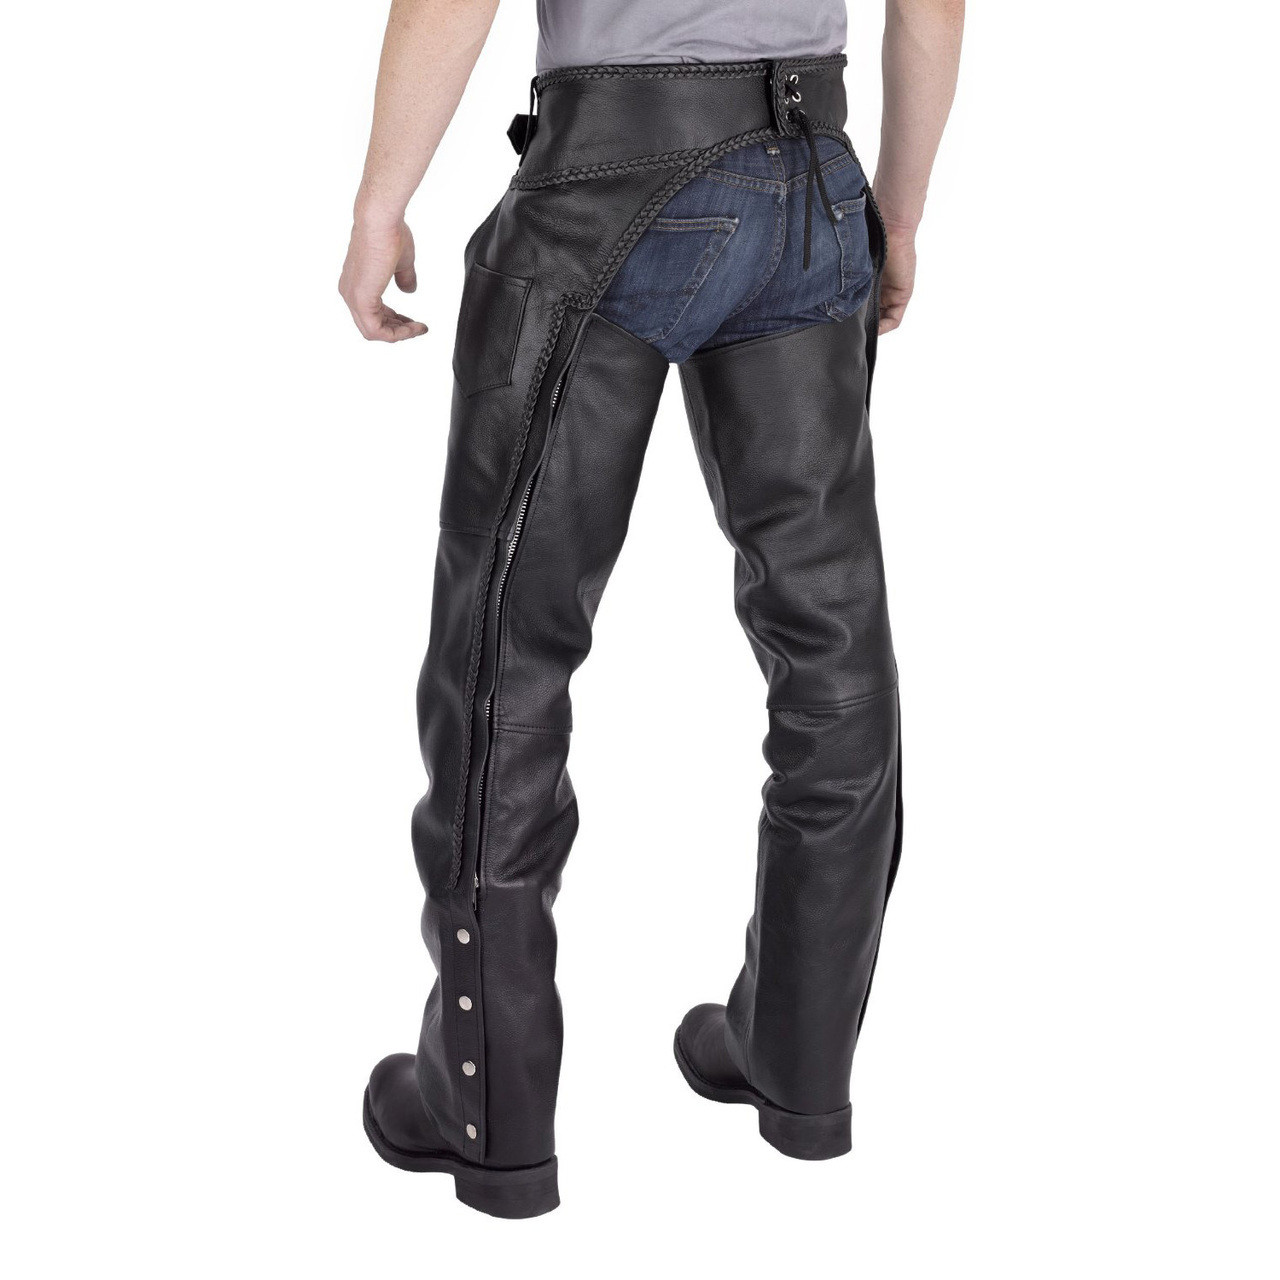 Nomad Usa Braided Motorcycle Leather Chaps Motorcycle